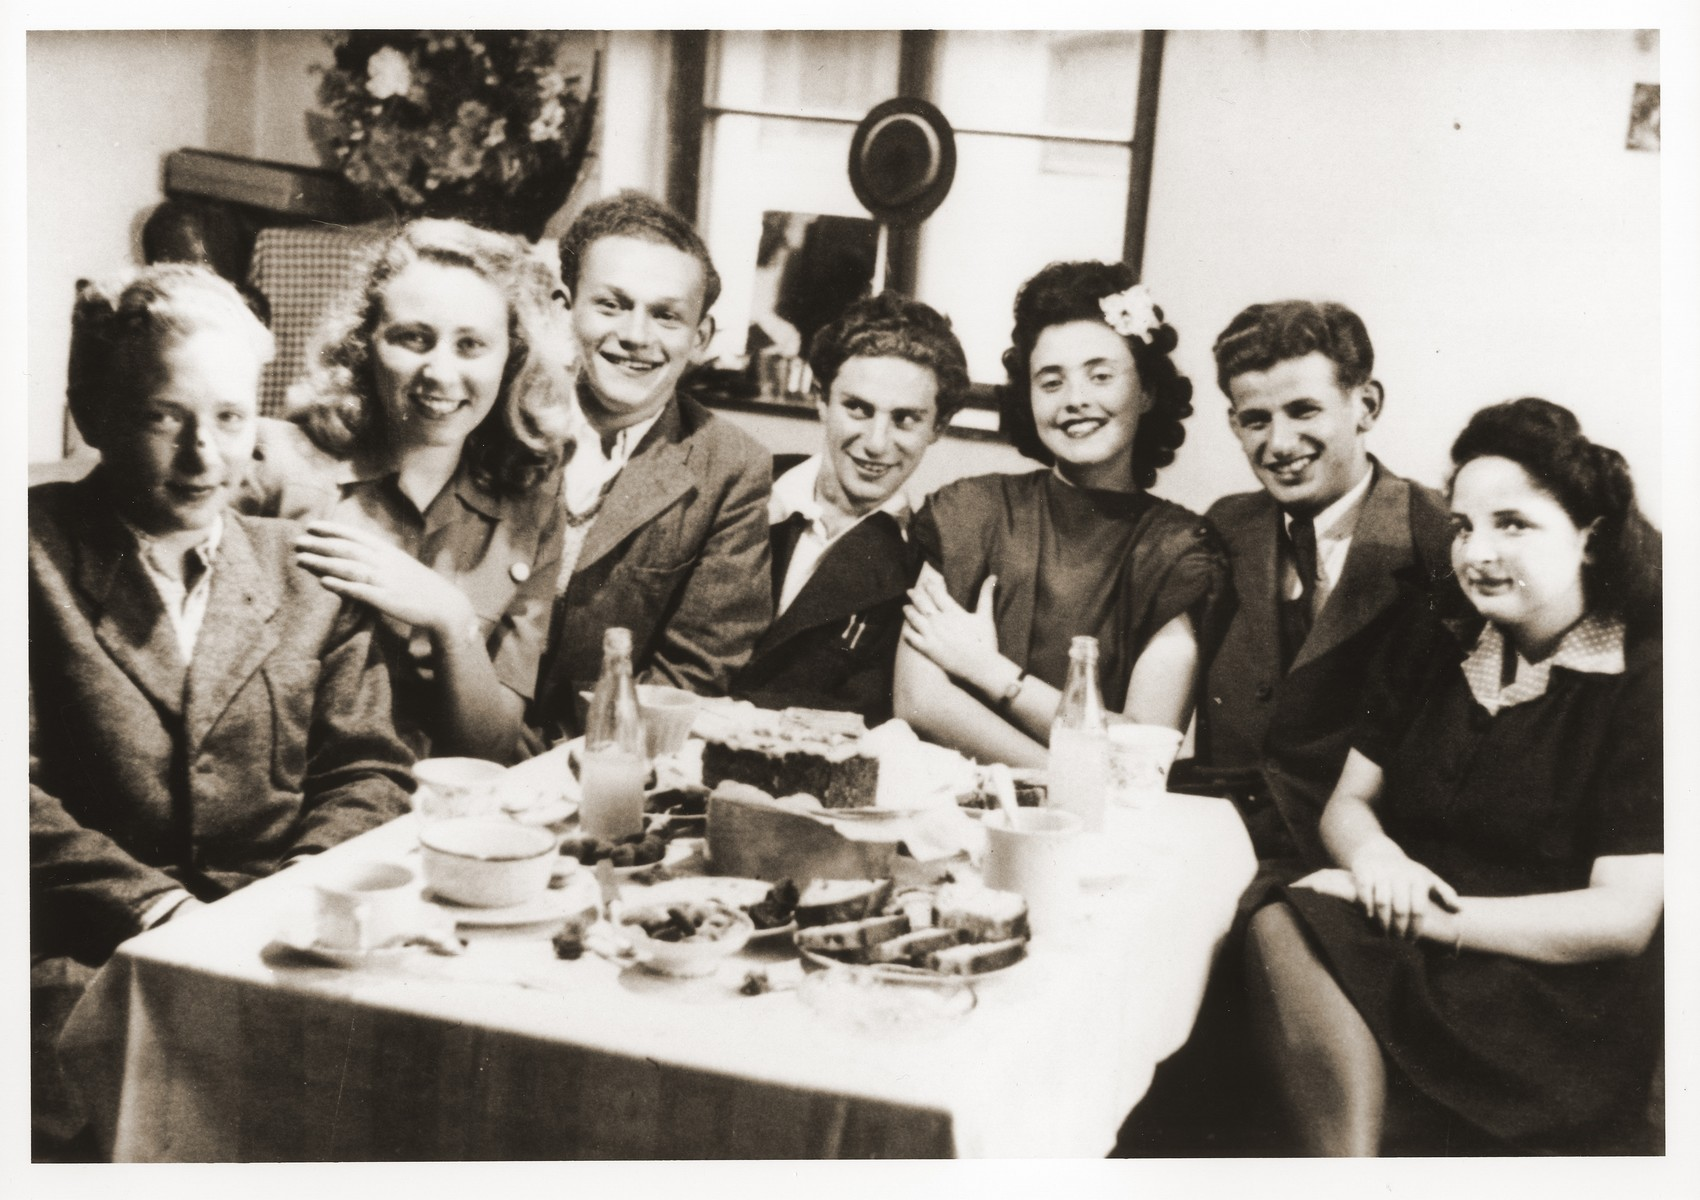 A group of young adults attends a birthday party for Irene (Freda) Landau in the Foehrenwald displaced persons camp.  Among those pictured is Frena Landau (third from the right), Otto Dornberg (second from the right), and Alicja Fajnsztejn (second from the left).  Also picutured is Bronik Grunschlag.